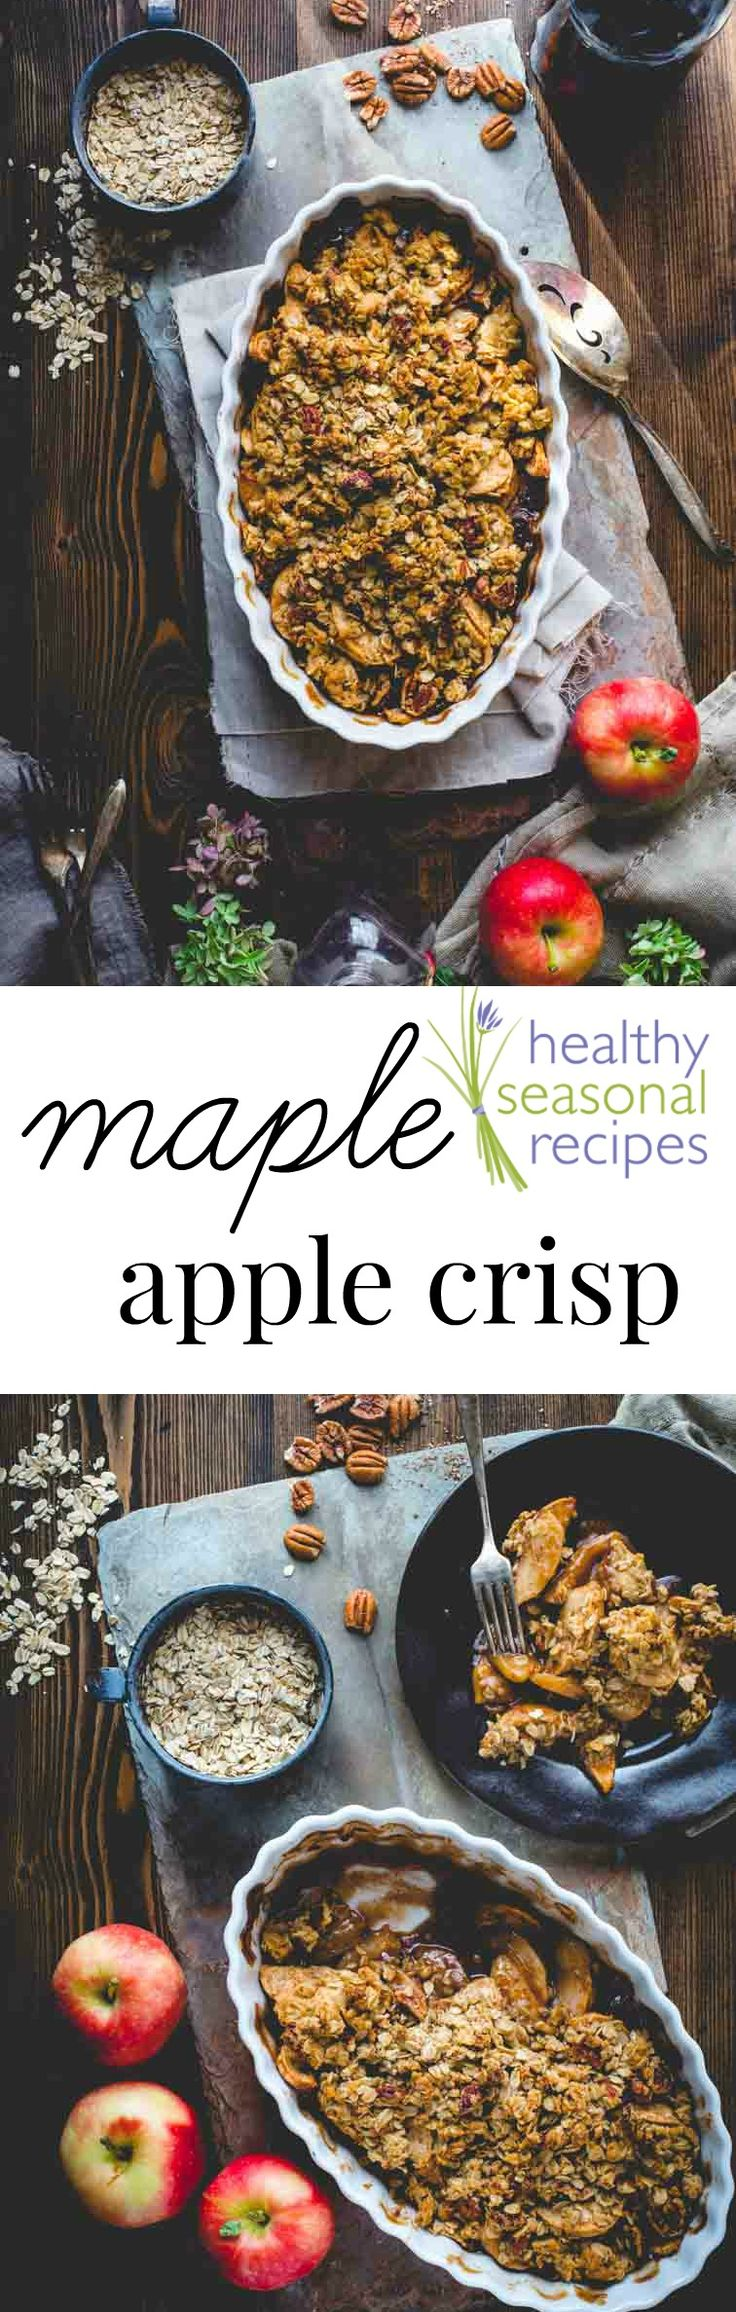 maple apple crisp - Healthy Seasonal Recipes